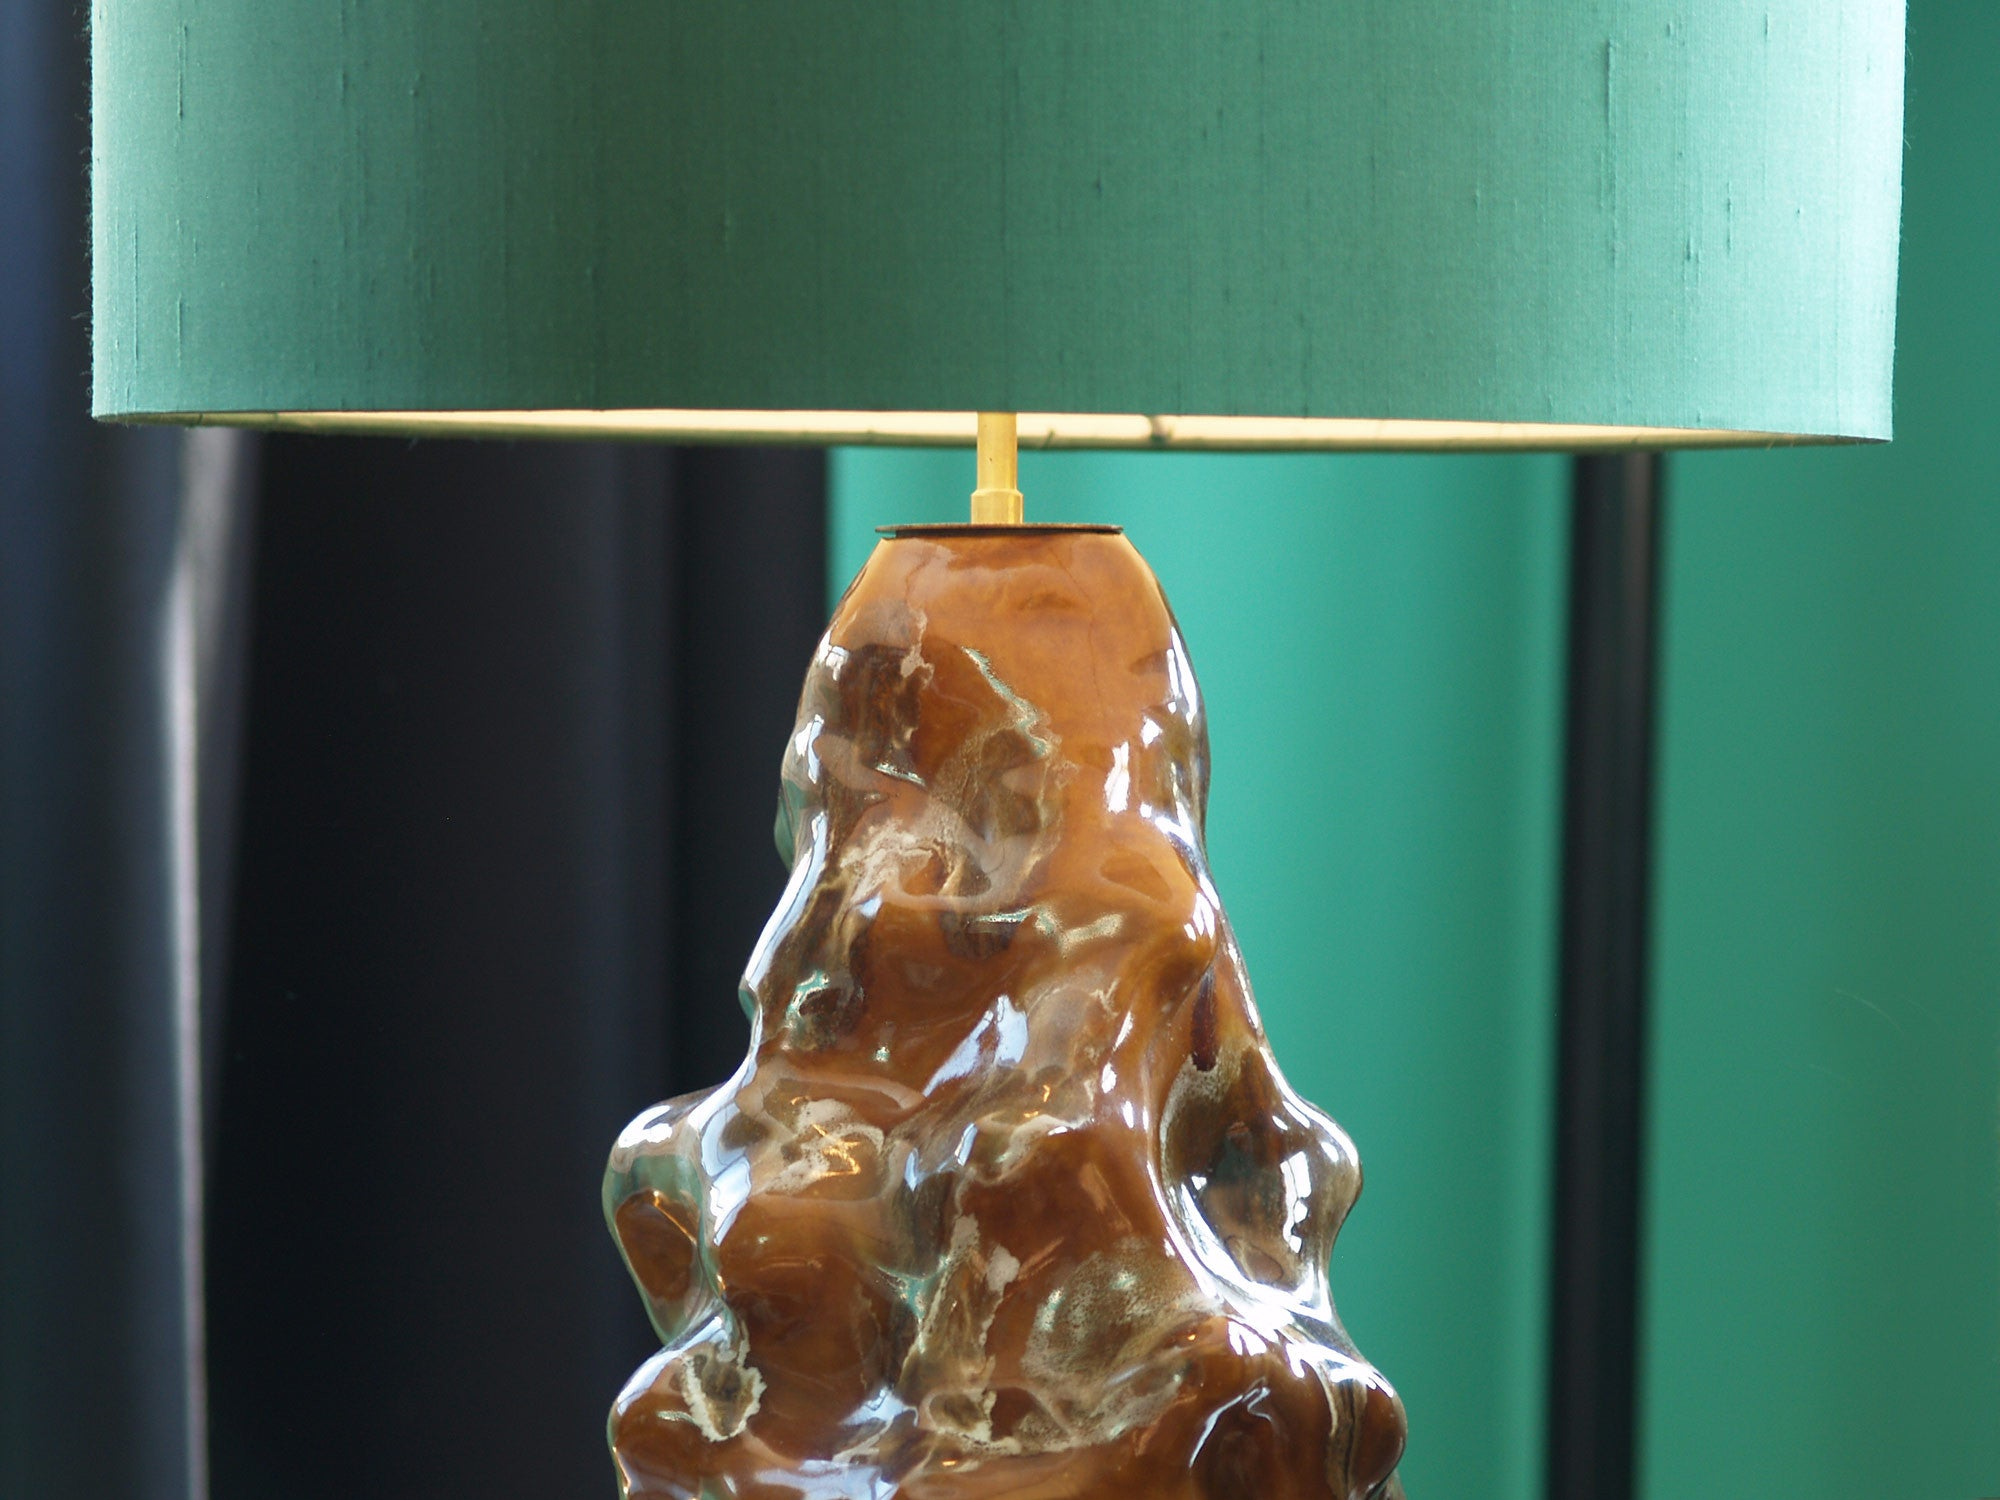 Lampe germinative de Lucien Arnaud, France (1949)..Carriès School Lamp by Lucien Arnaud, France (1949)